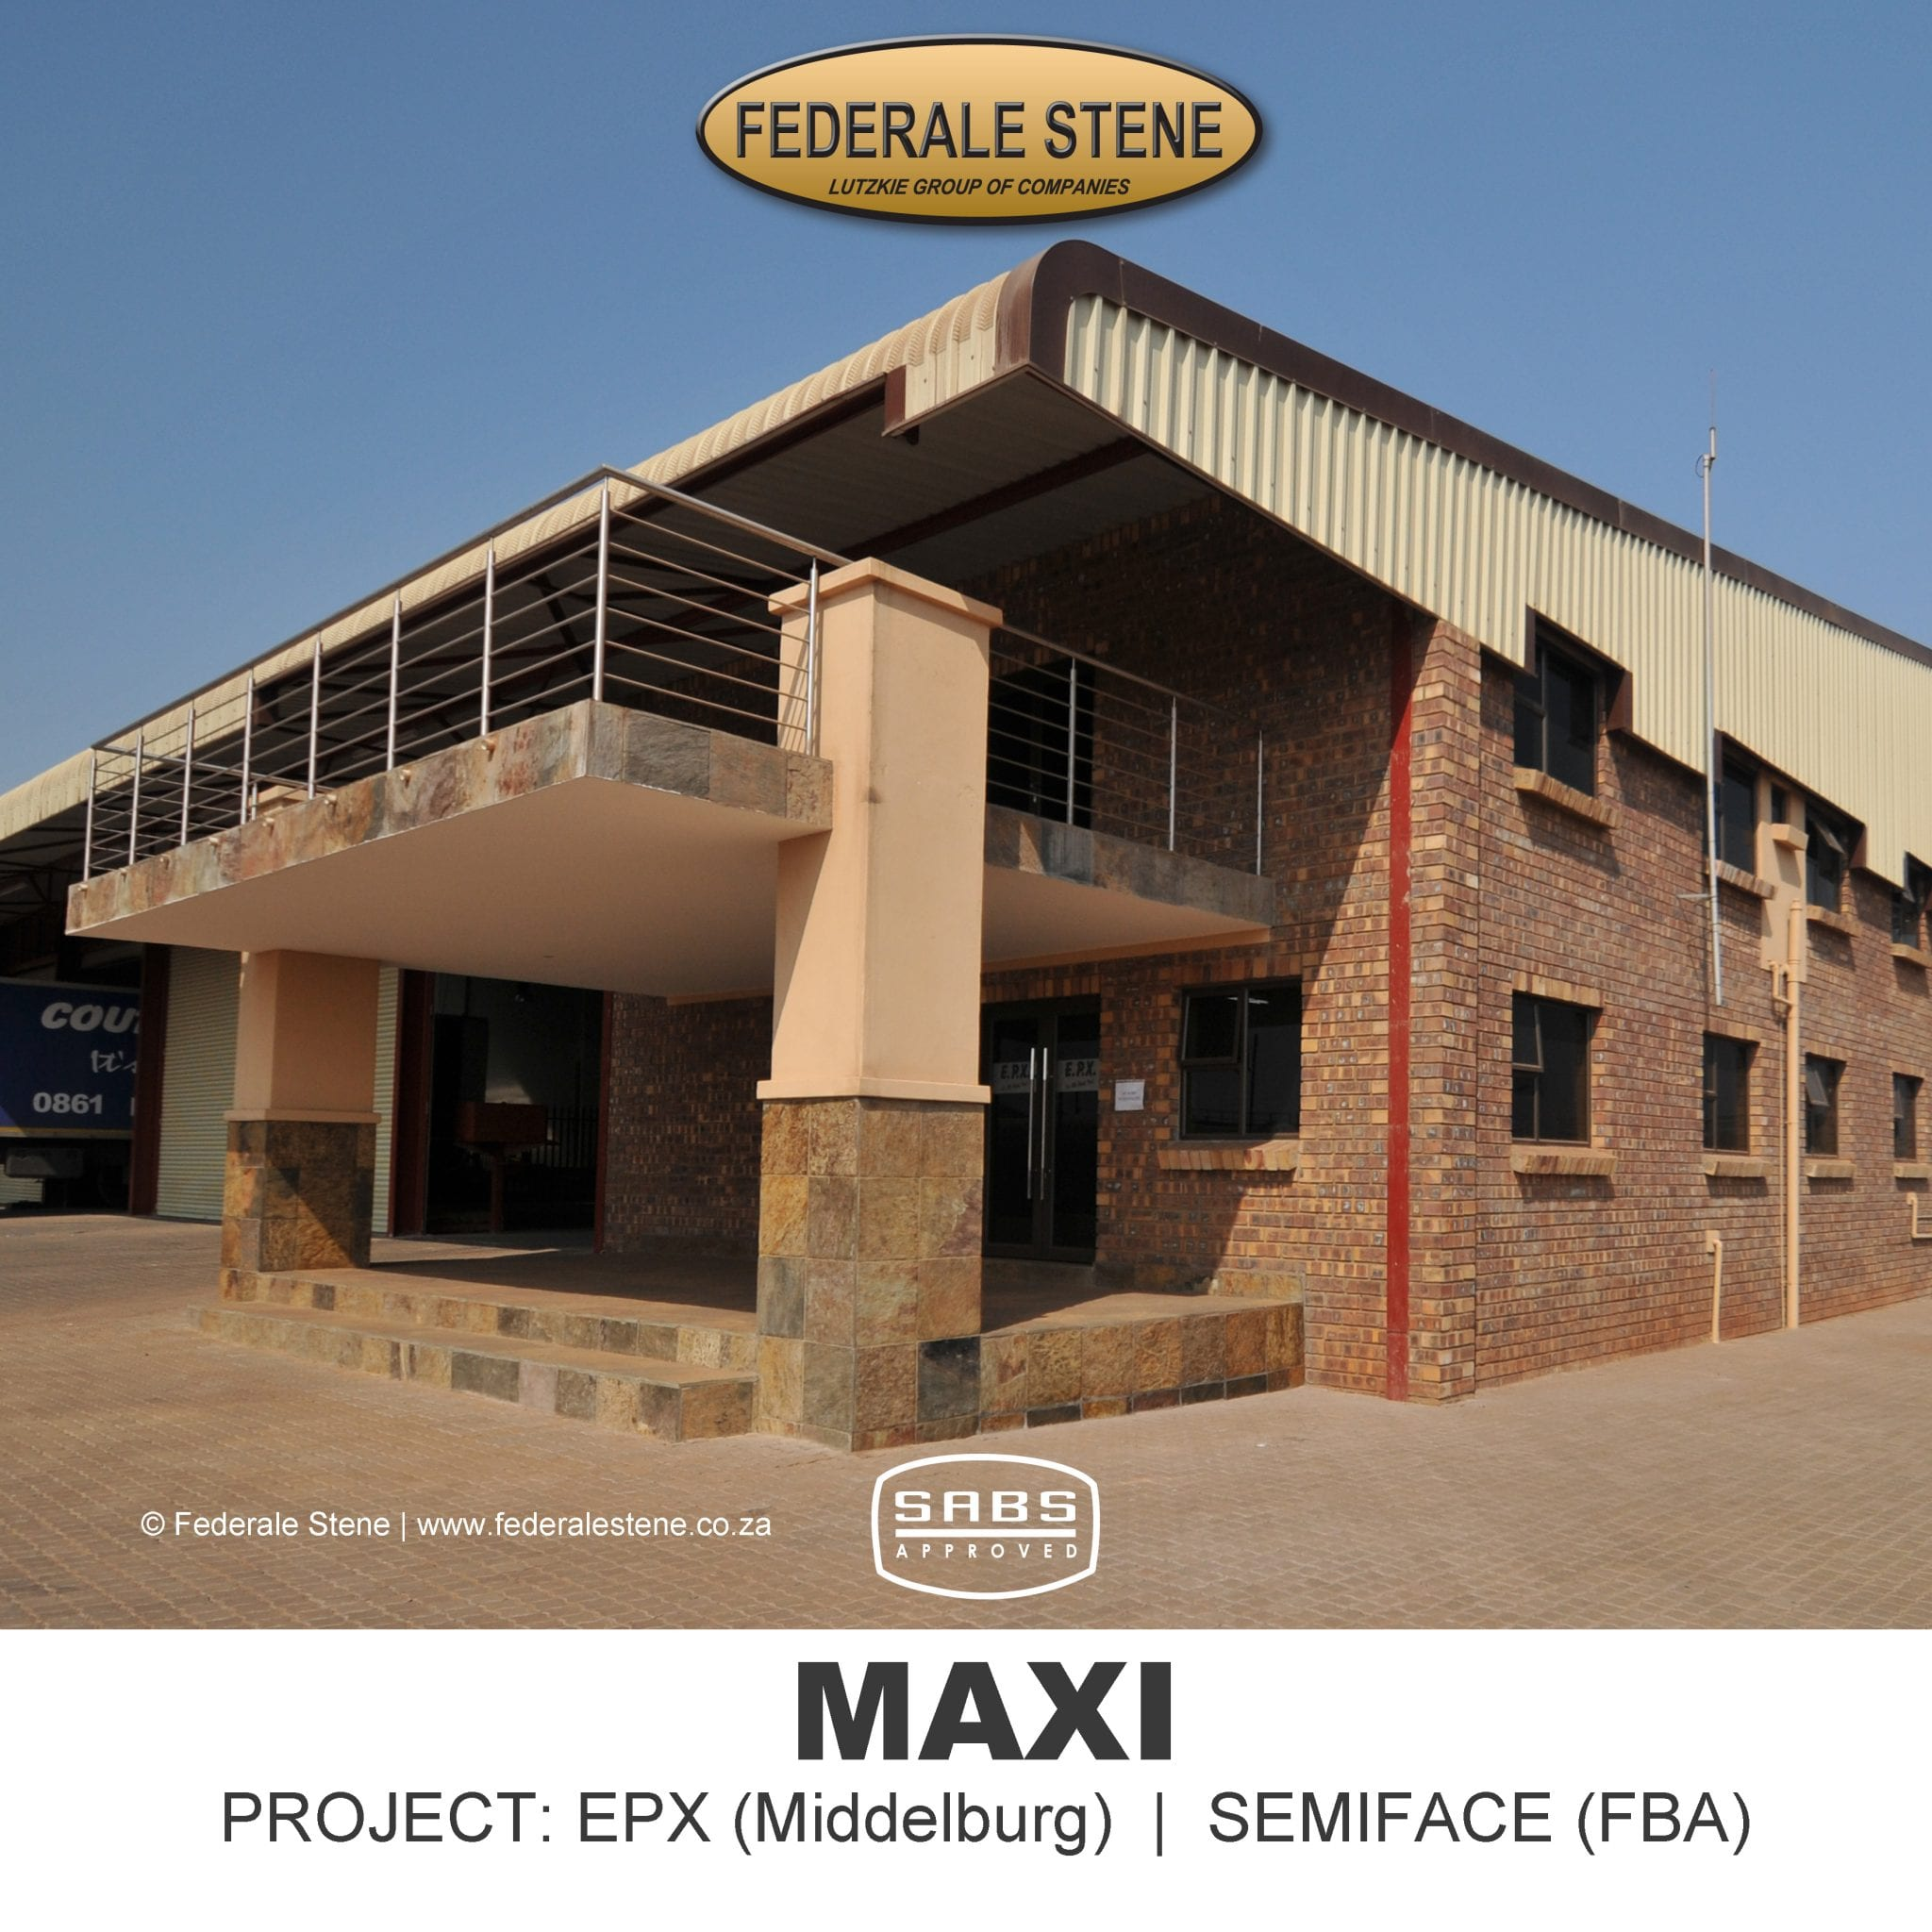 Maxi Cement Bricks: Federale Stene